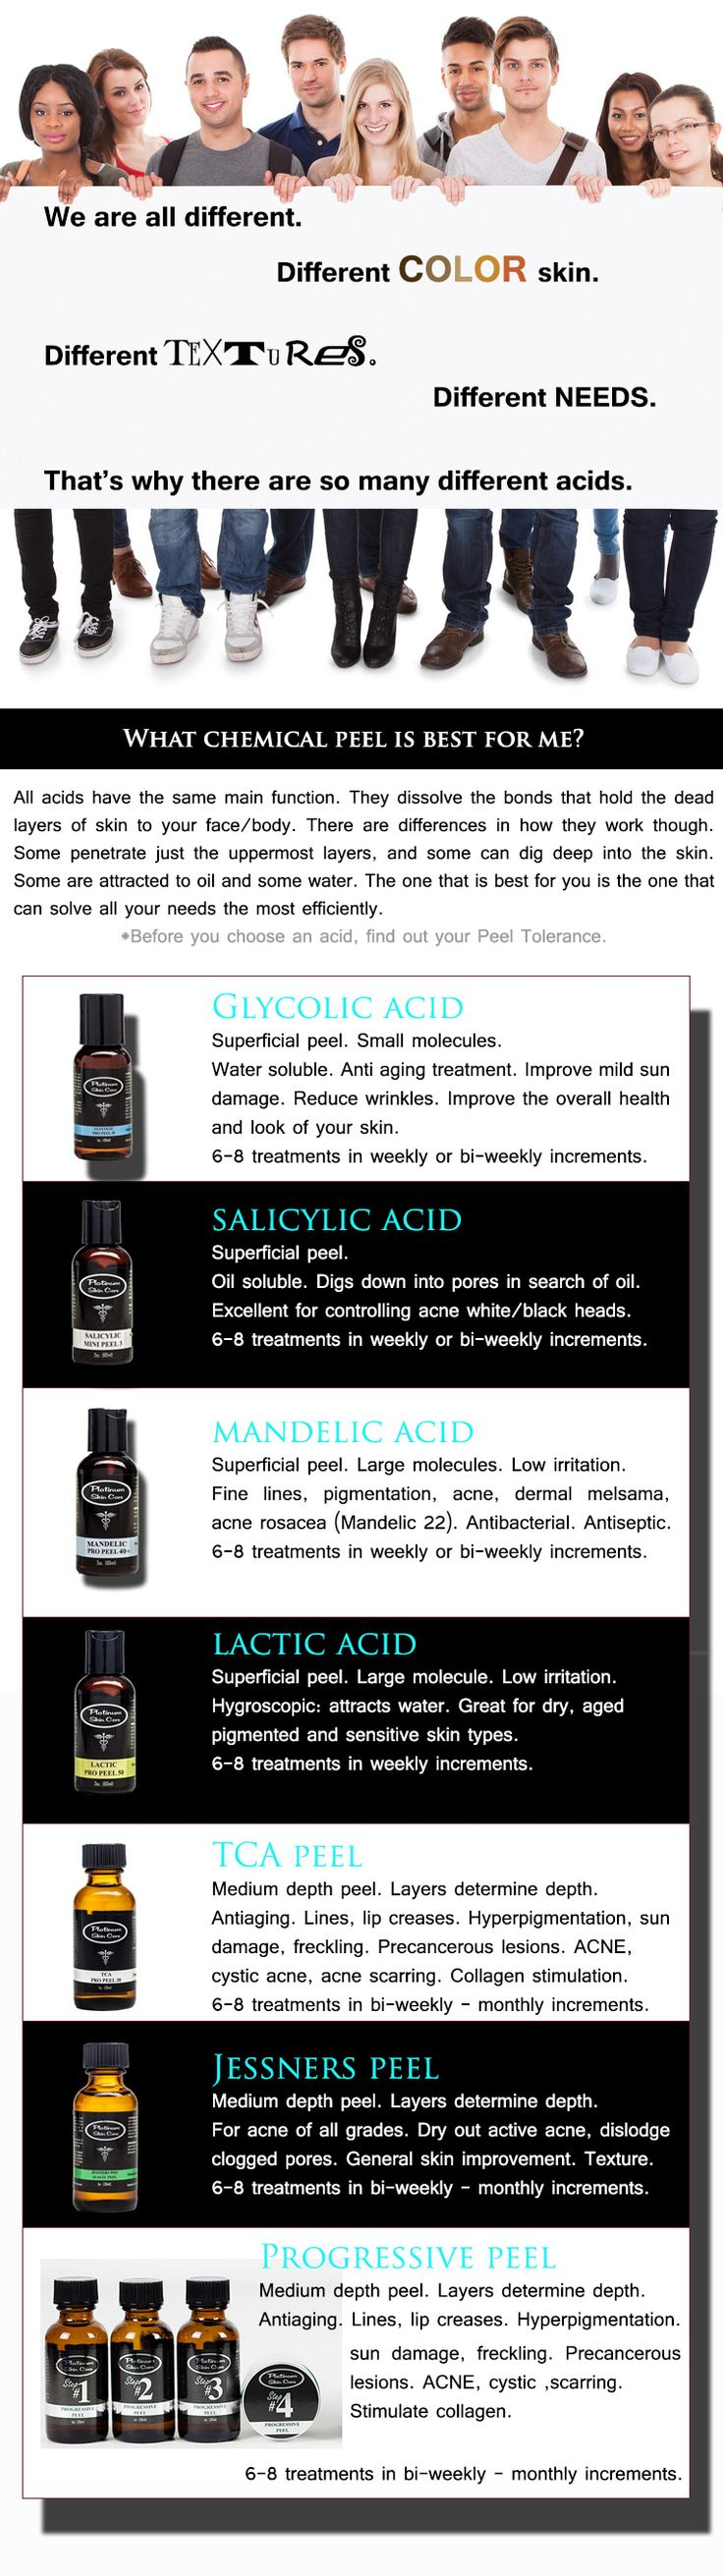 I want to do an at home chemical peel. Which acid should I choose for my skin? Look at our informative chart and see which acid will work best for your skin.